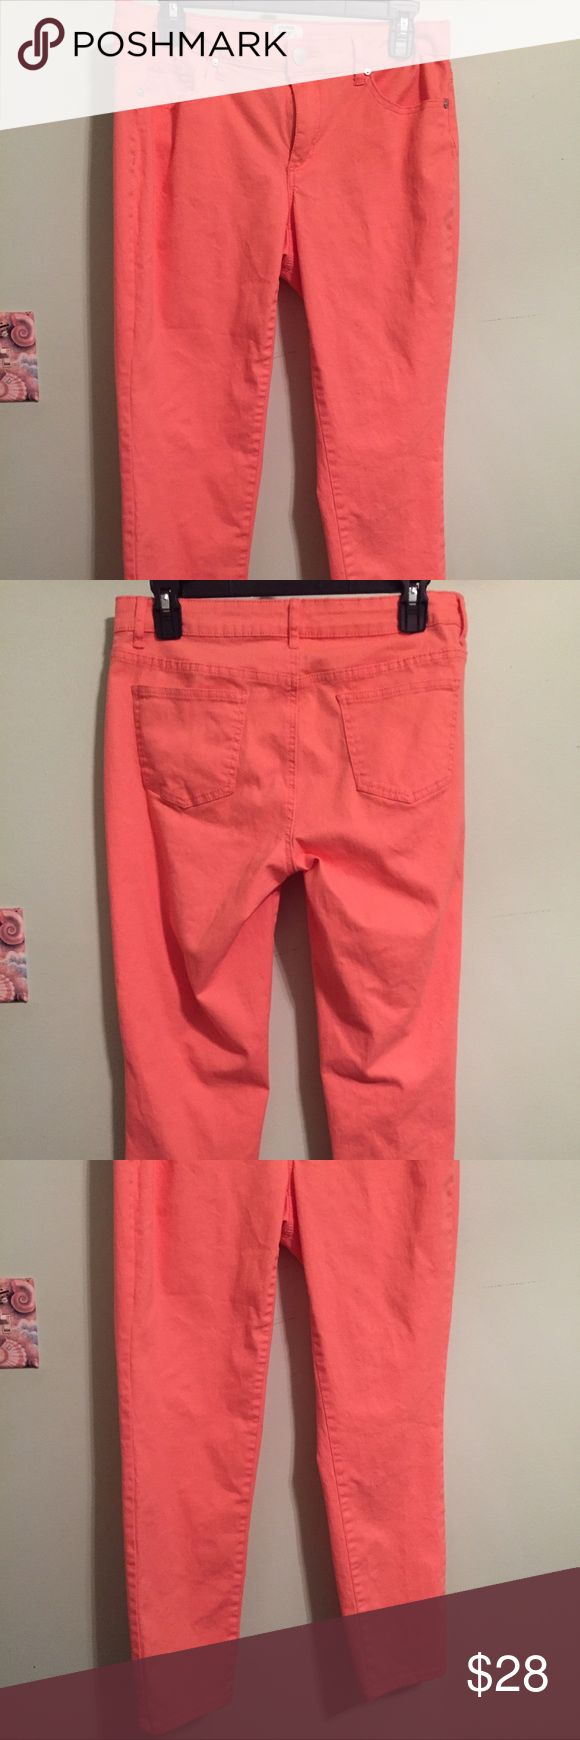 CROWN & IVY CORAL JEANS IN A SIZE 10P EUC!!! Crown & Ivy Coral jeans in a size 10 Petite. Jeans are in EUC!! I wore these once,  then laundered them. These jeans are definitely a size too big. If you wear a 12P then the 10P would work great. Material is 98% cotton and 2% spandex. Crown & Ivy Jeans